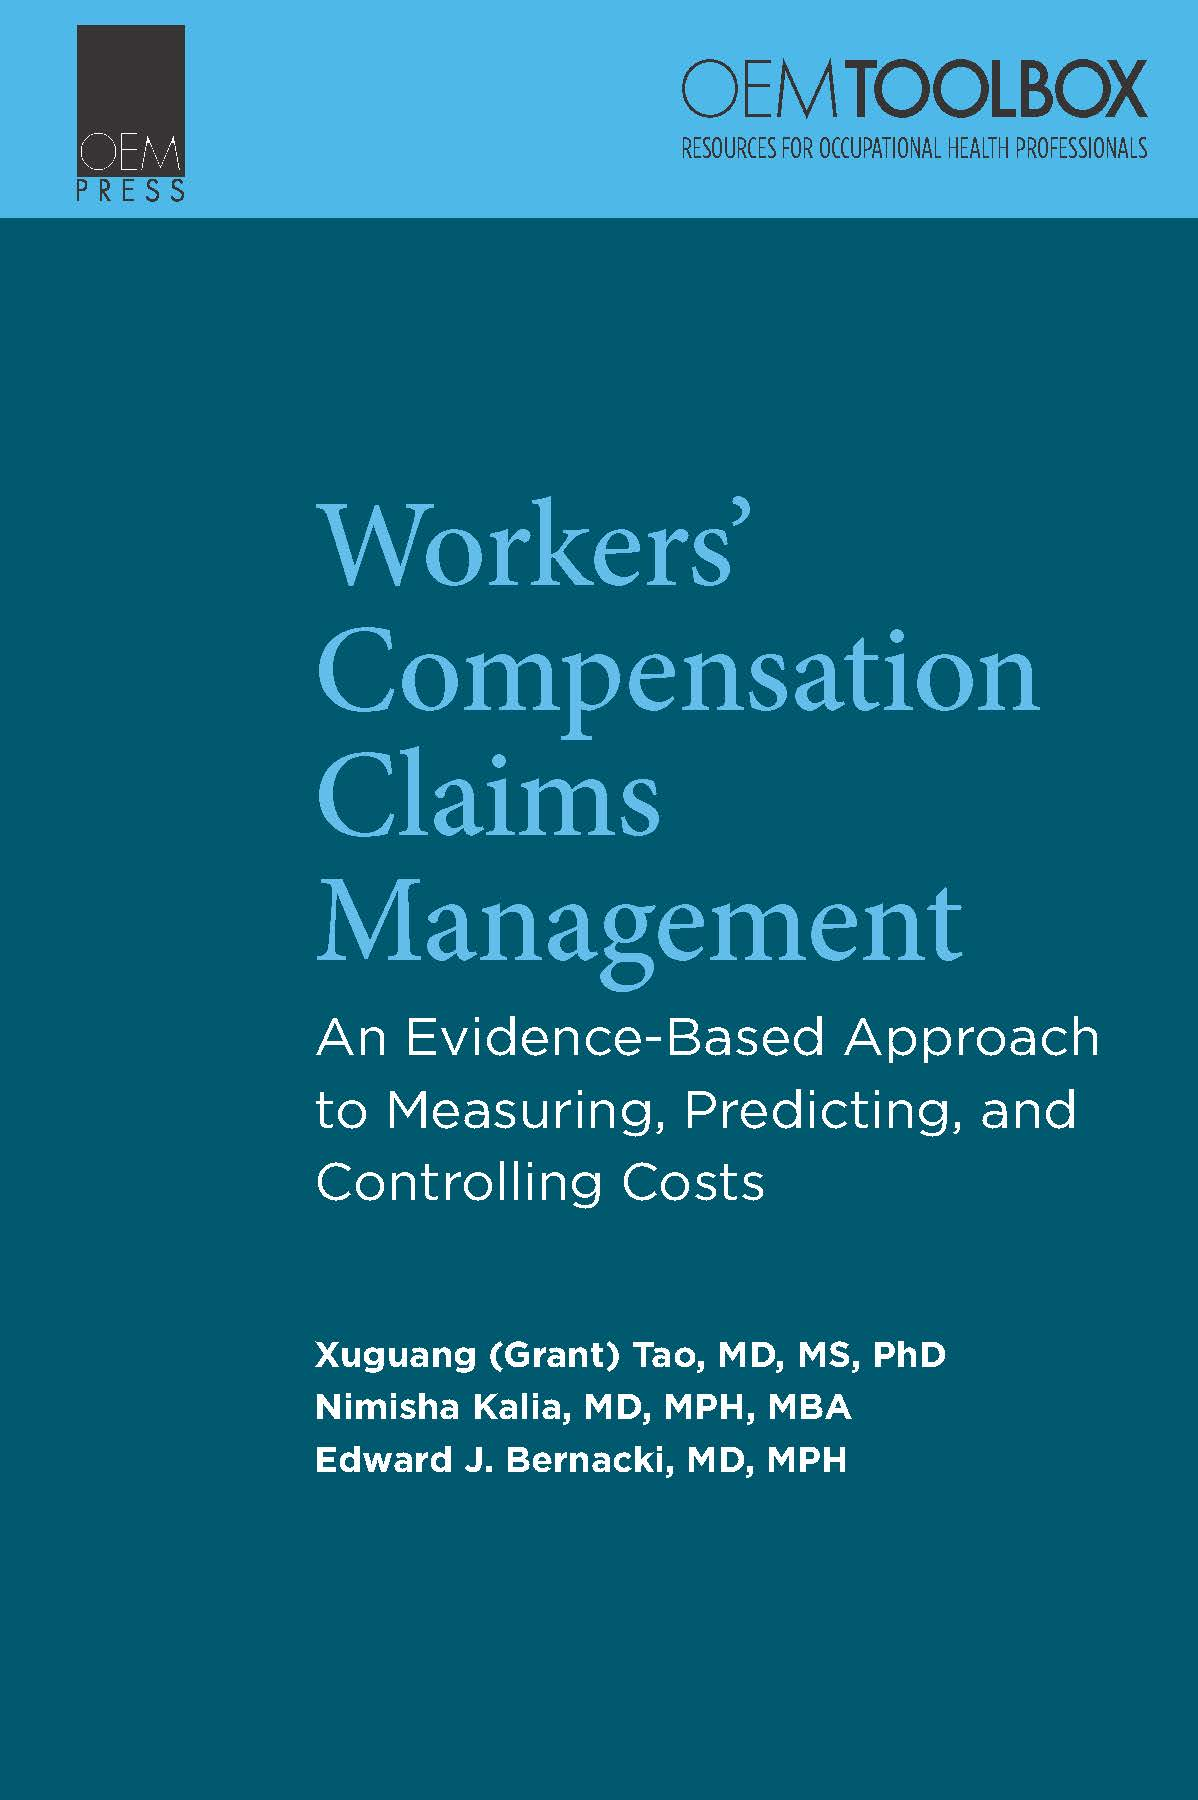 Workers' Compensation Claims Management: An Evidence-Based Approach to Measuring, Predicting, and Controlling Costs cover image